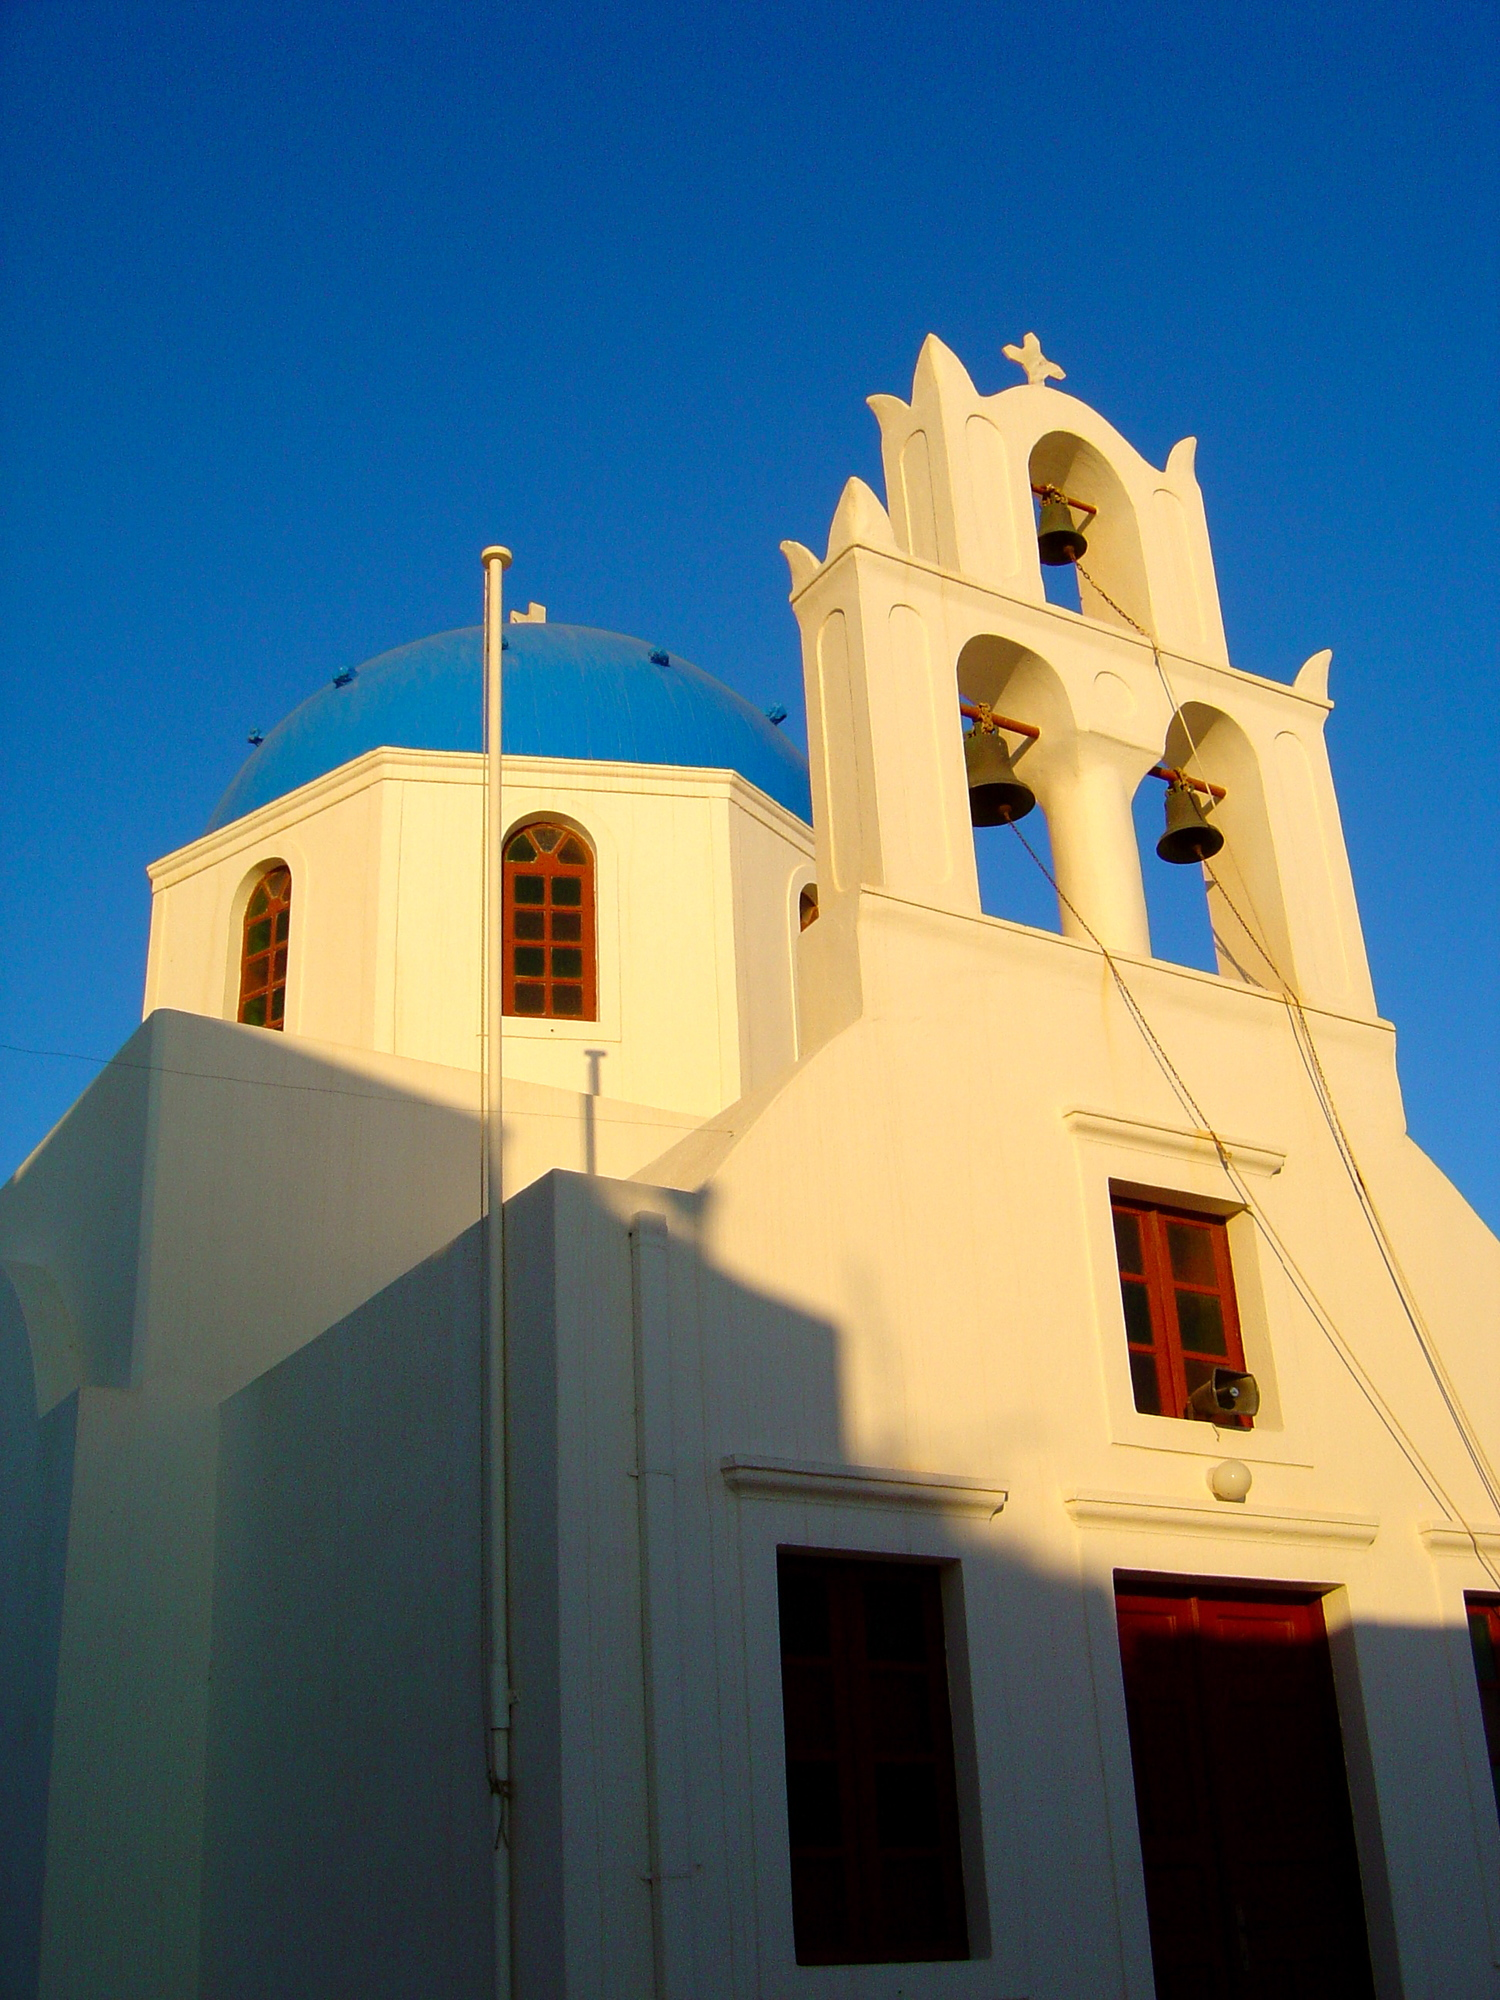 Greek, White and Blue: Why Are the Buildings in Greece ...